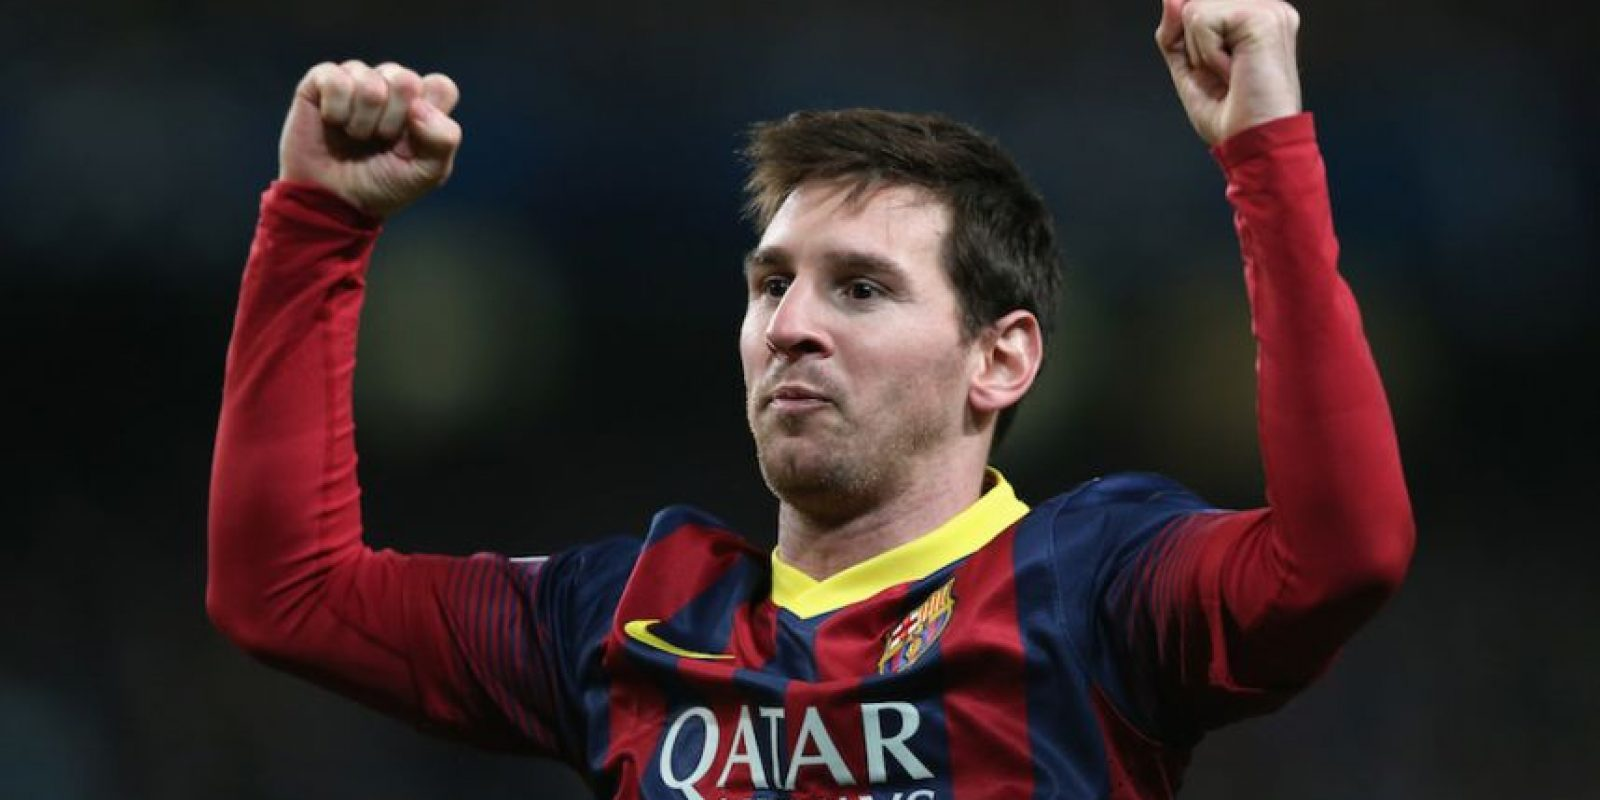 72 goles – Lionel Messi (Argentina) Foto: Getty Images